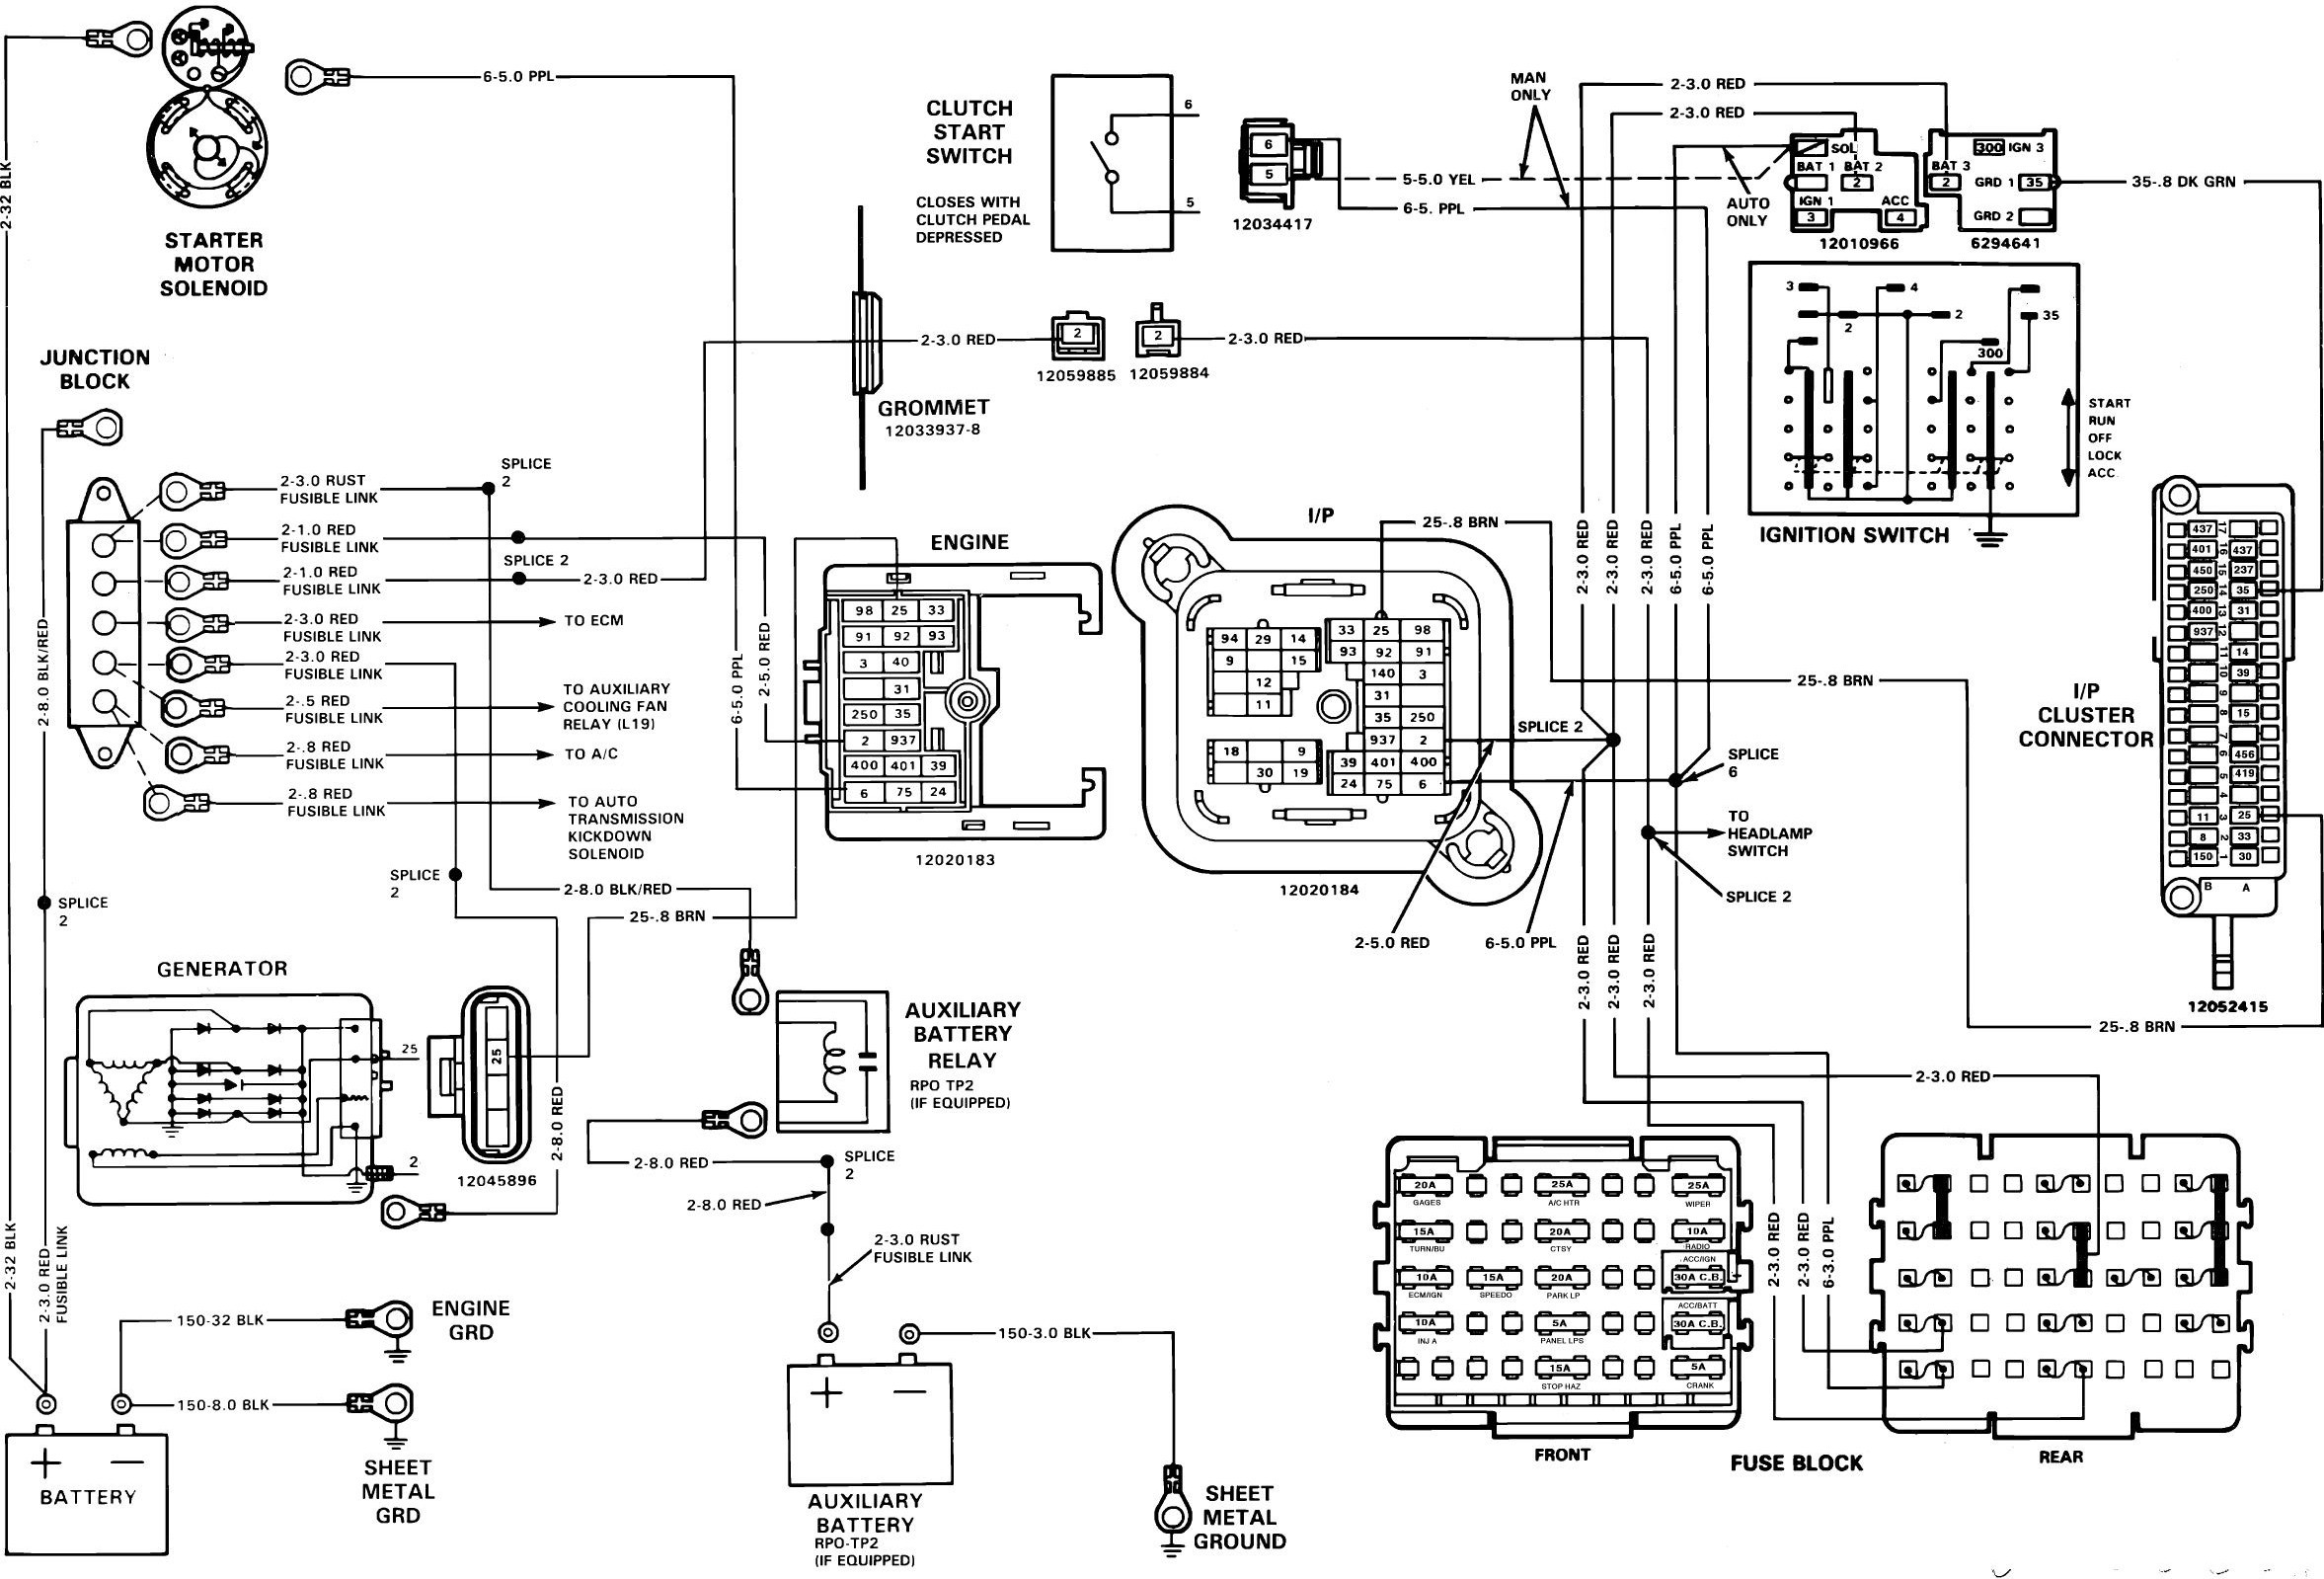 1989 gmc sierra horn diagram 1989 gmc headlight wiring diagrams | wiring library 1989 gmc sierra wiring diagram